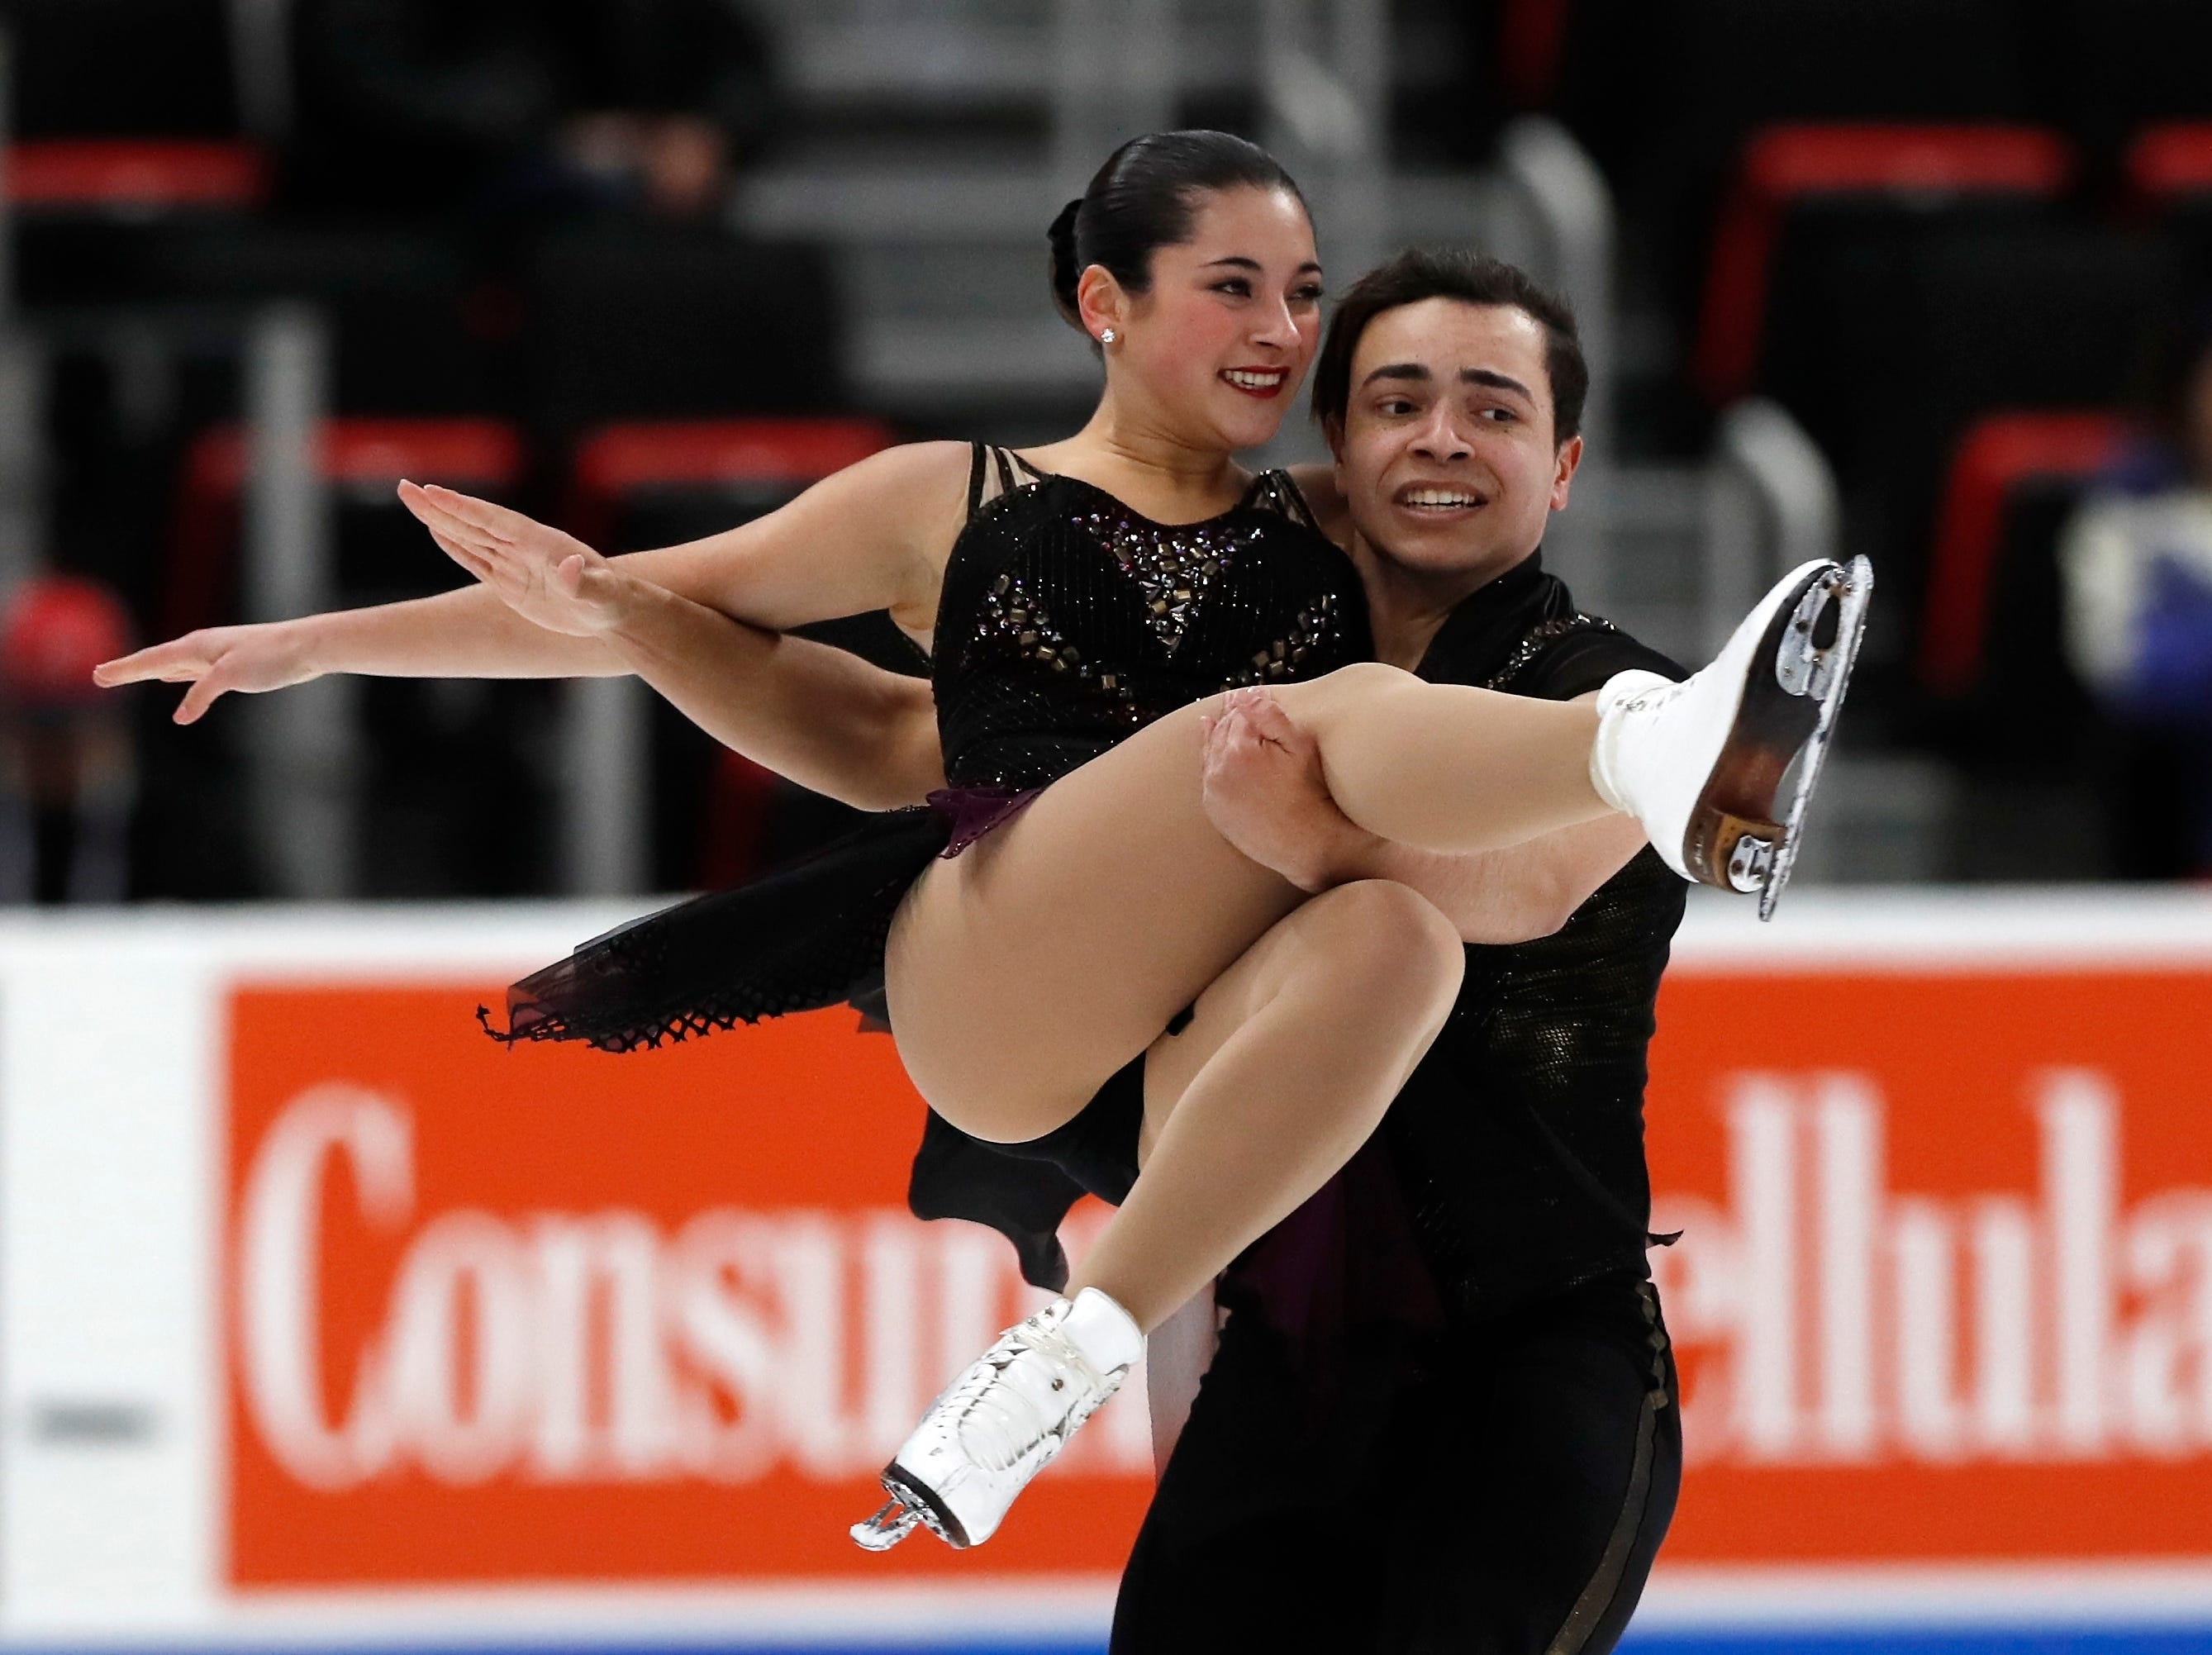 Alannah Binotto and Shiloh Judd perform in the rhythm dance program during the U.S. Figure Skating Championship.